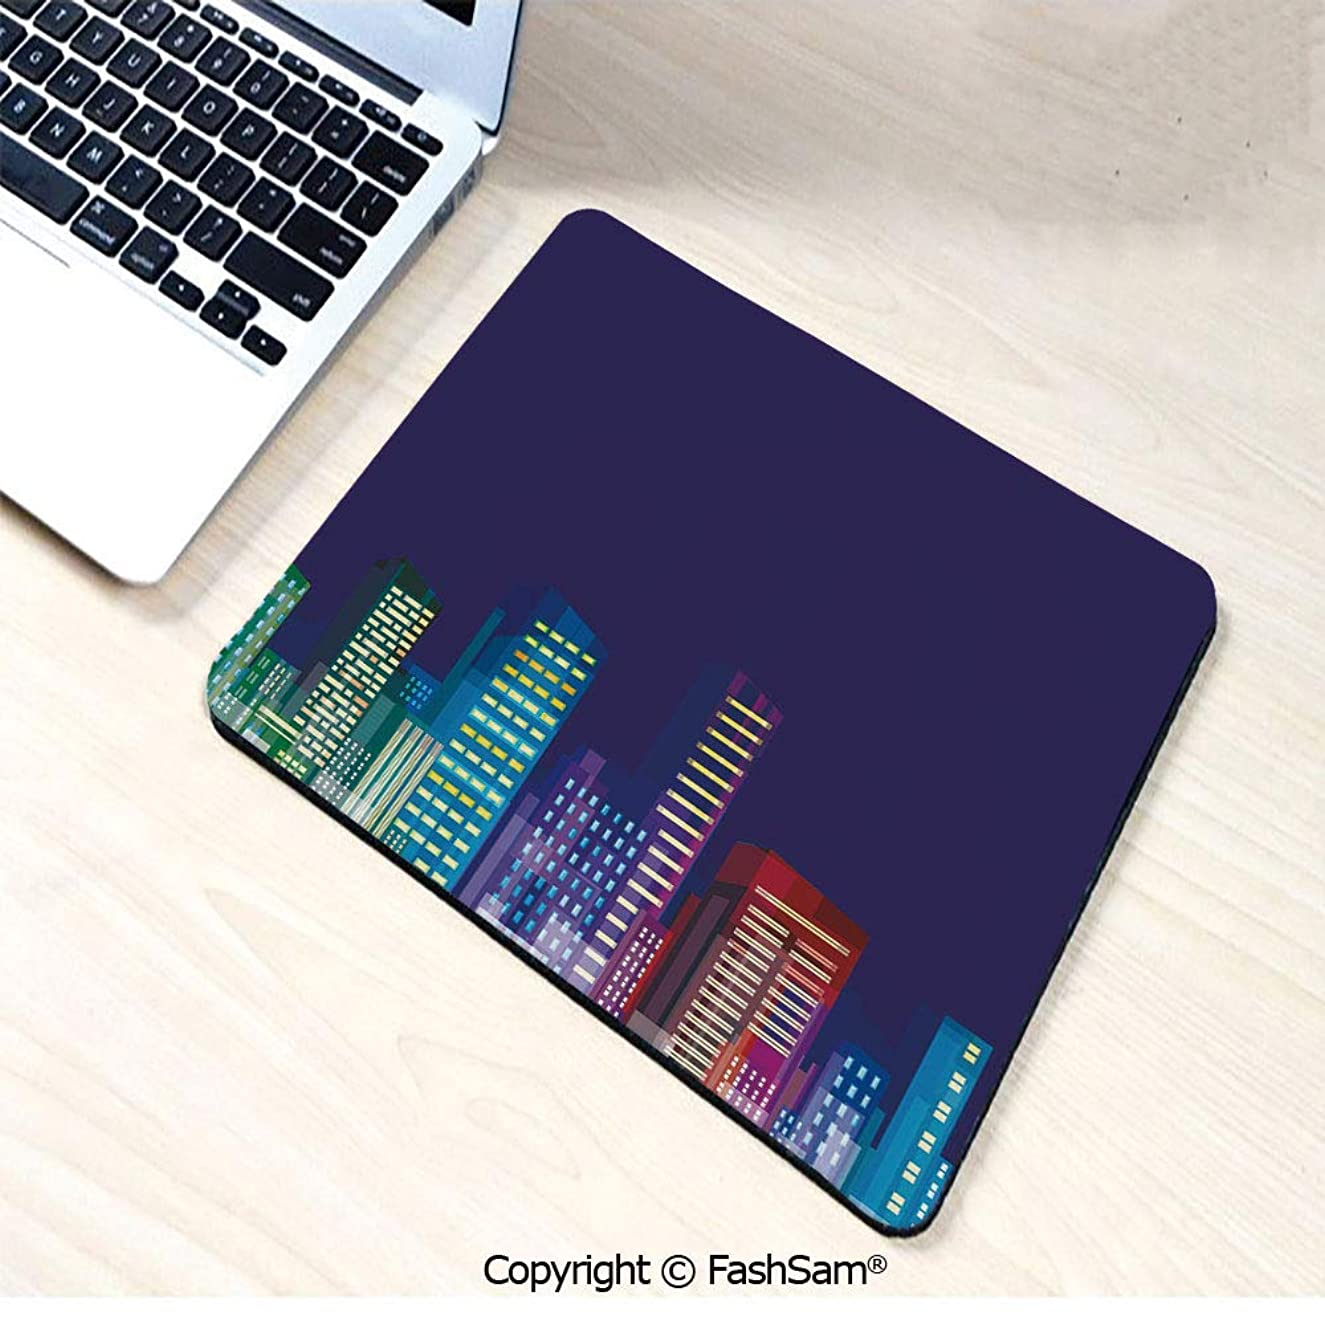 Non-Slip Rubber Mouse Pads Cartoon Print of City Scenery Landscape of Apartments and Buildings Artwork for Computers Laptop Office(W7.8xL9.45)